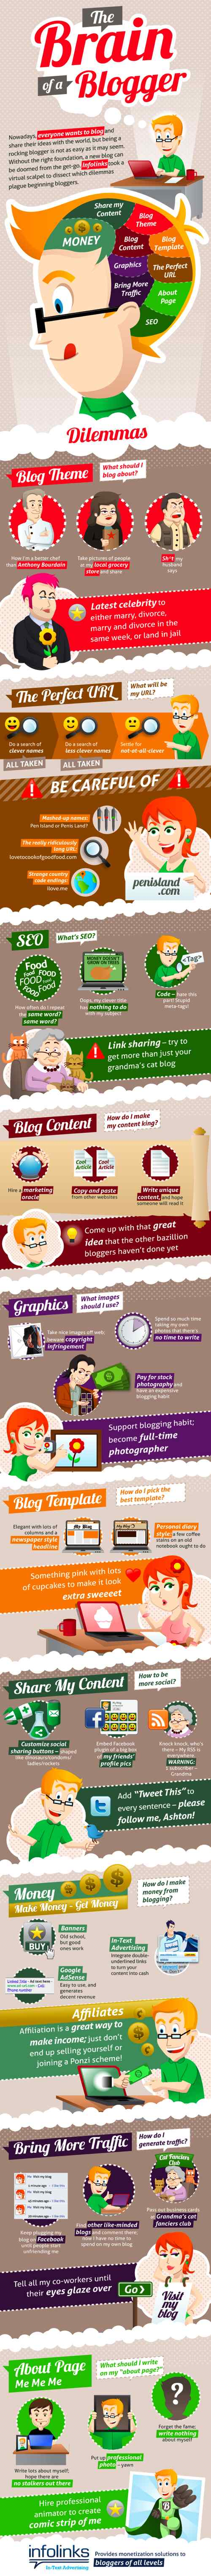 Infographic: The Brain of the Beginning Blogger